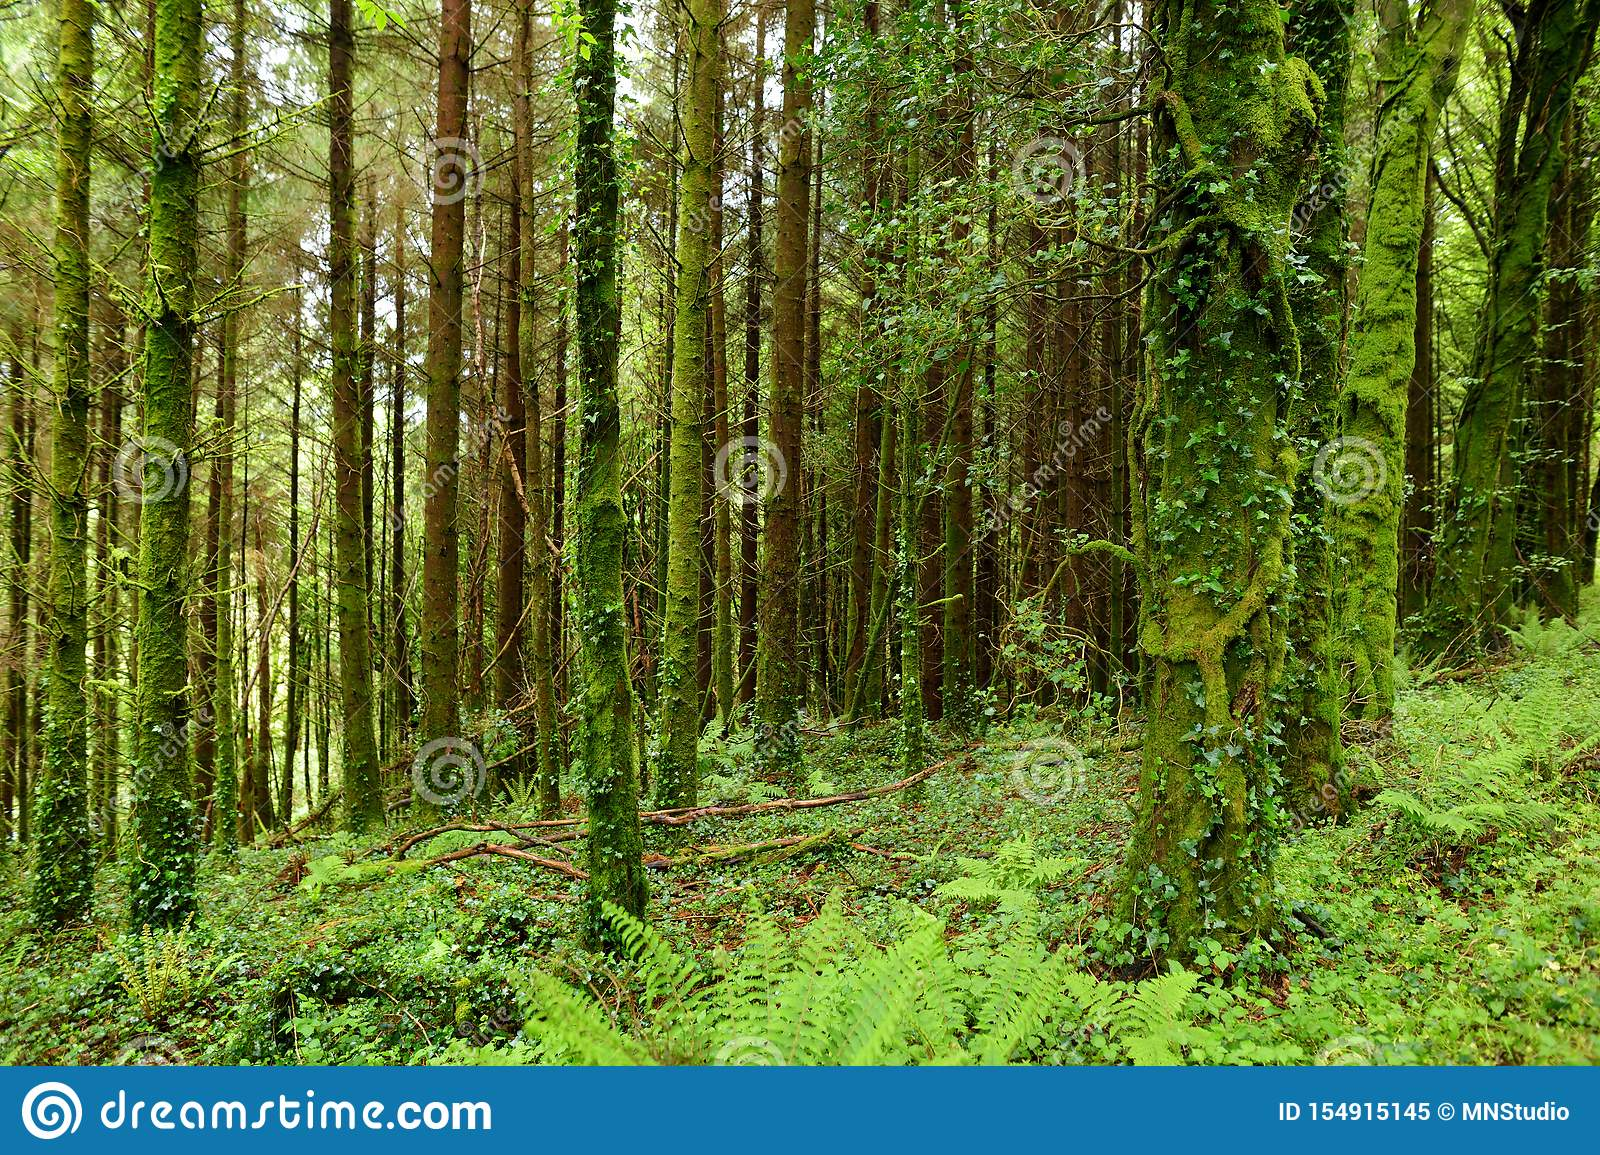 Massive Pine Trees With Ivy Growing On Their Trunks Impressive